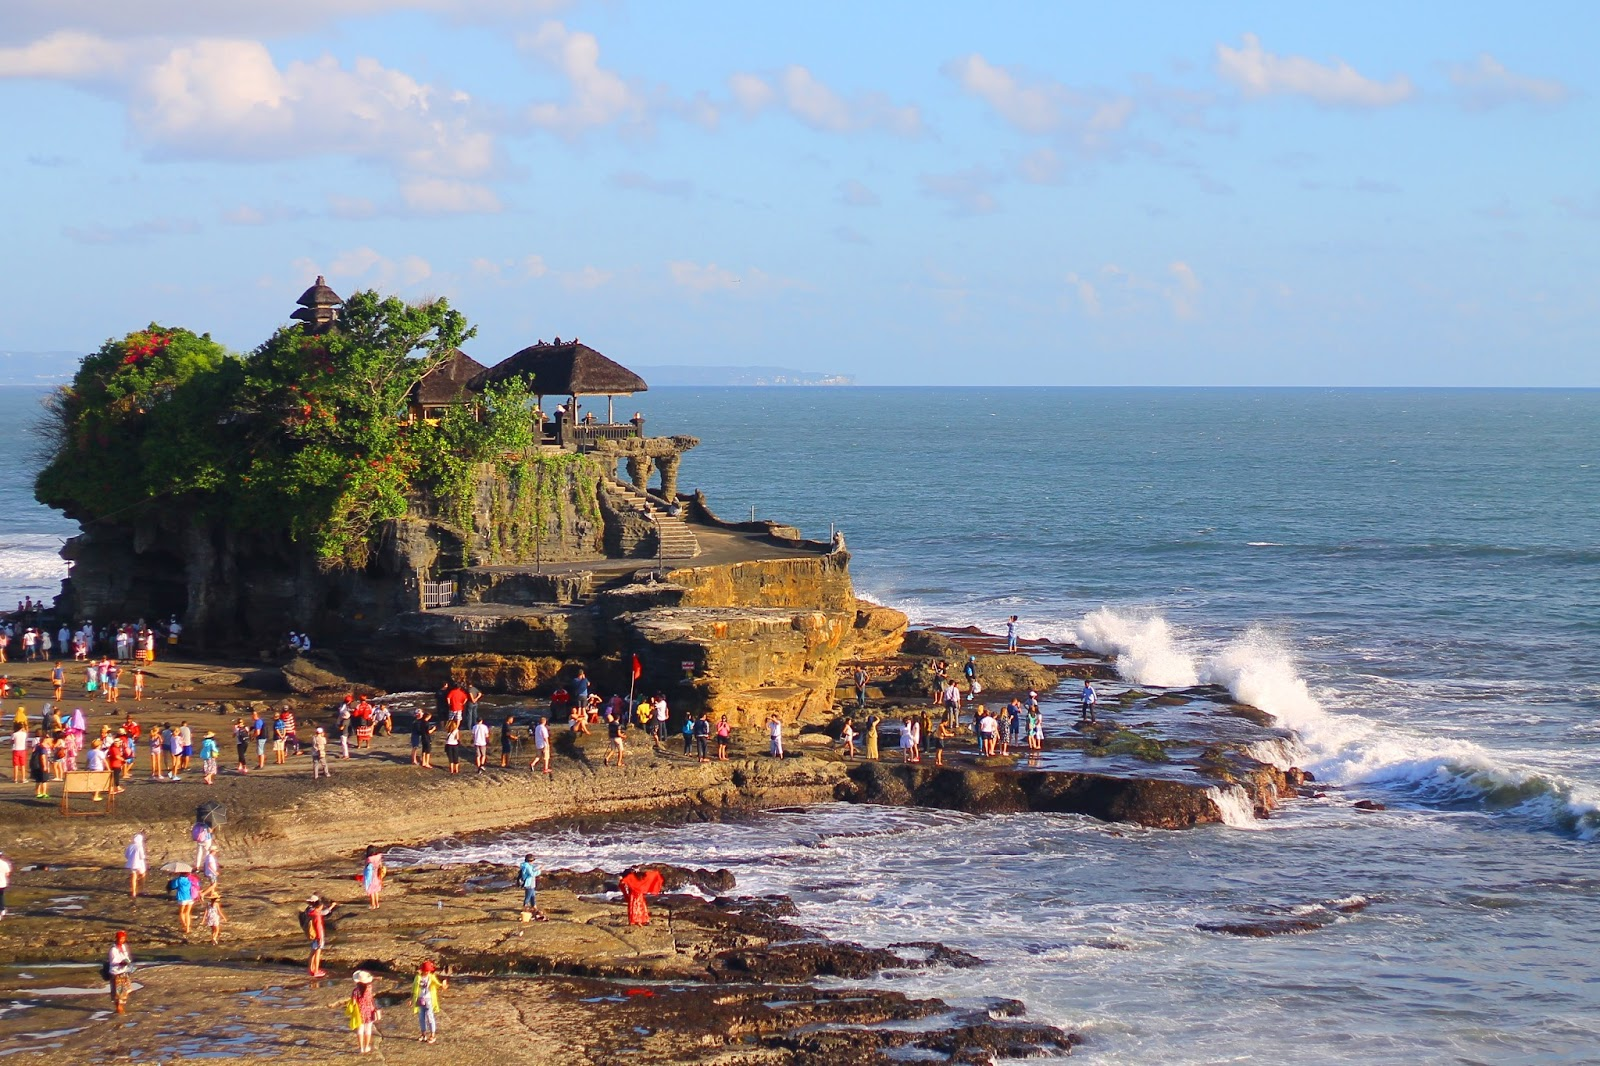 Temples of Bali